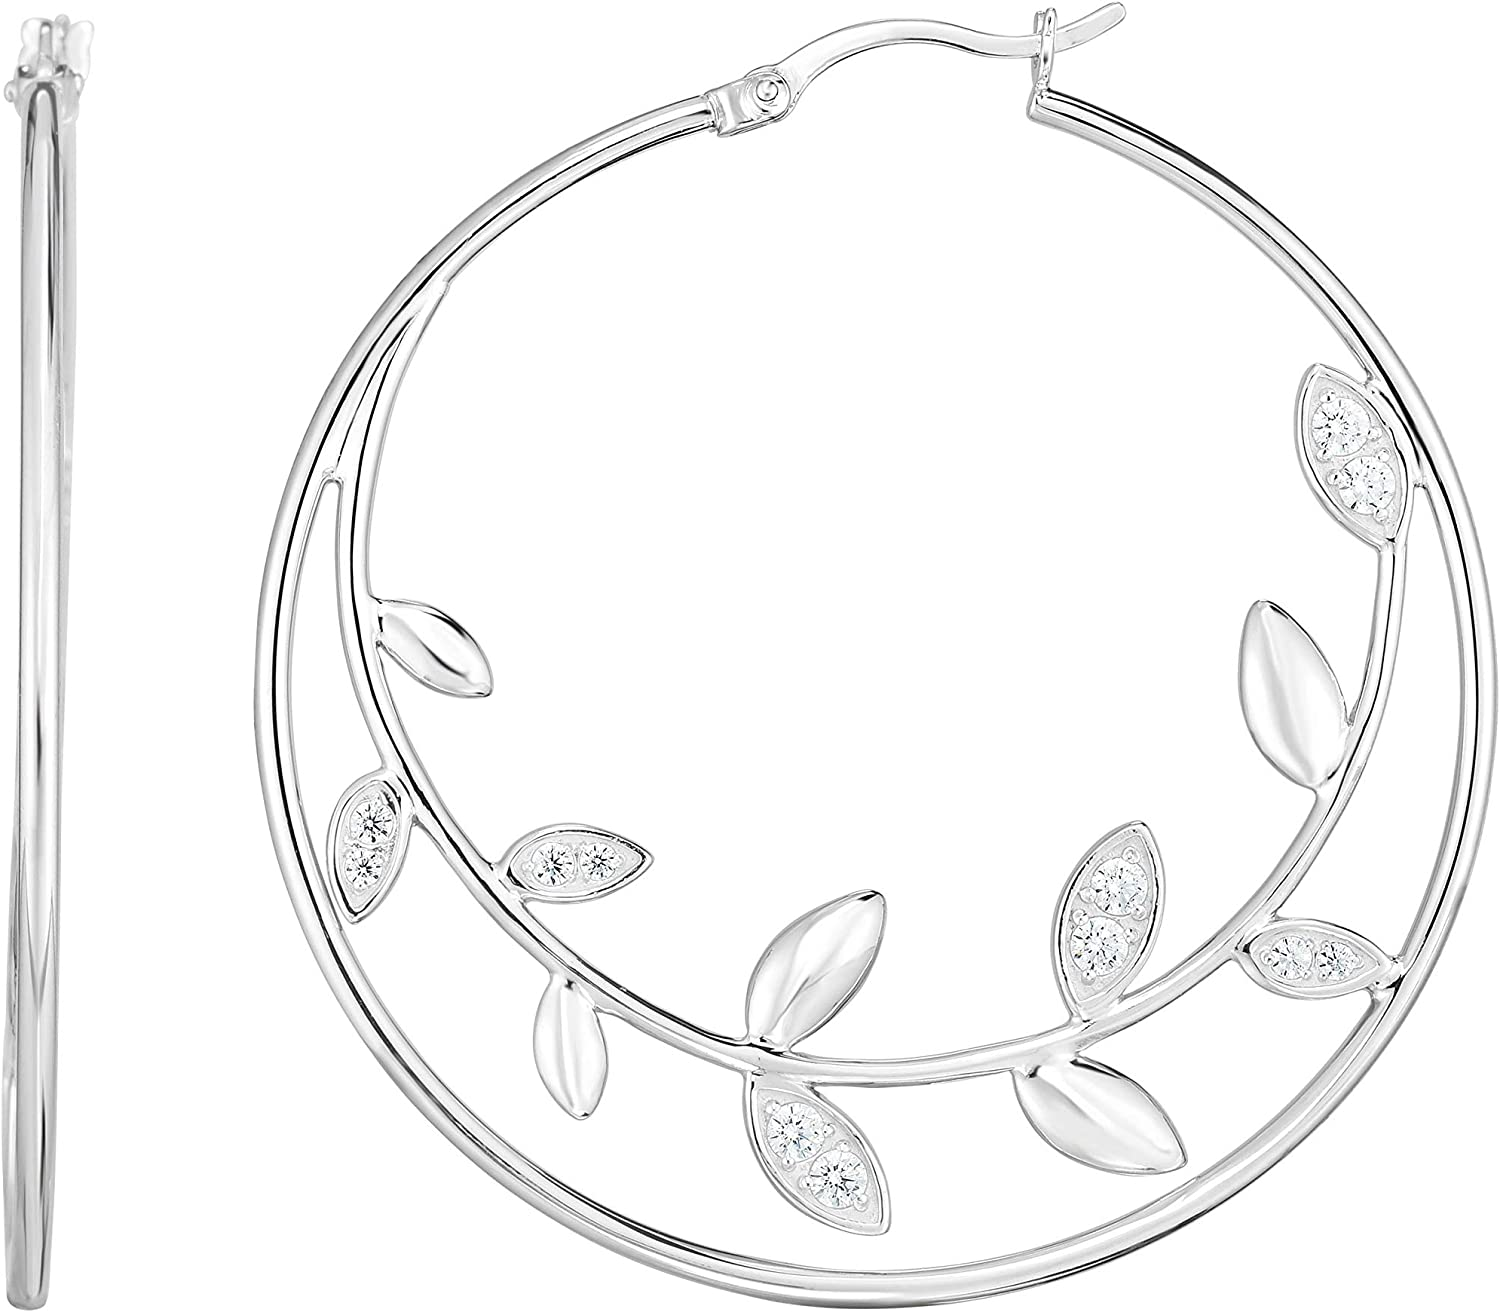 Silver with Rhodium Finish 1.5x49x48mm cheap Selling rankings Earring Polished Hoop wit